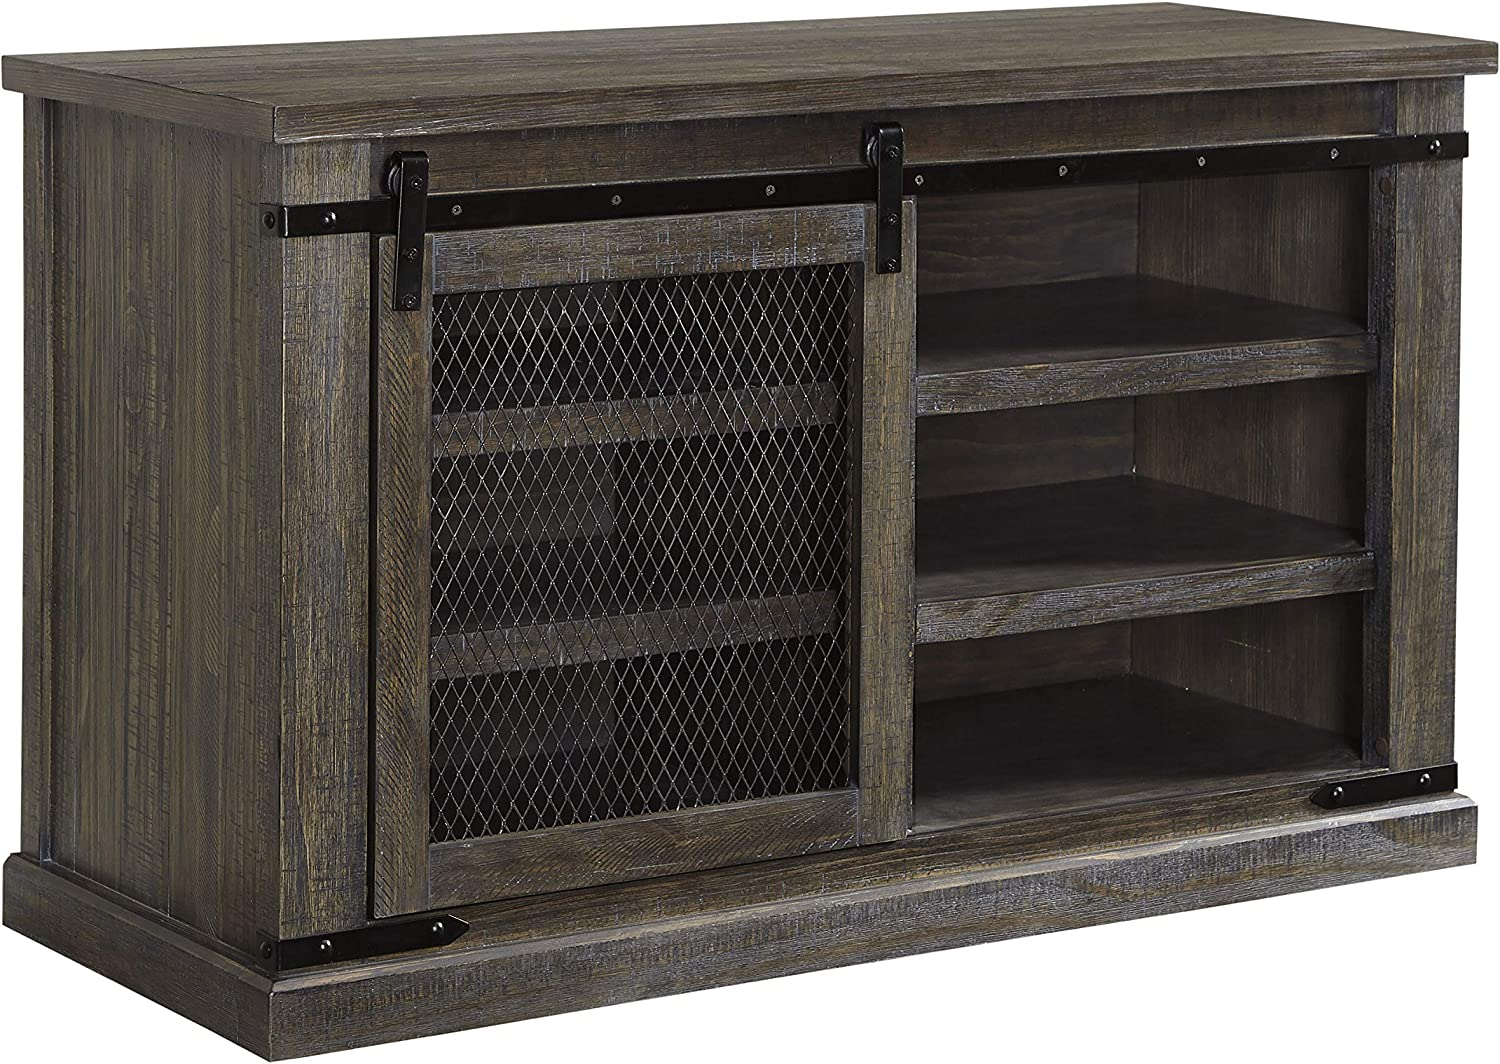 Signature Design by Ashley Danell Ridge Medium TV Stand Brown